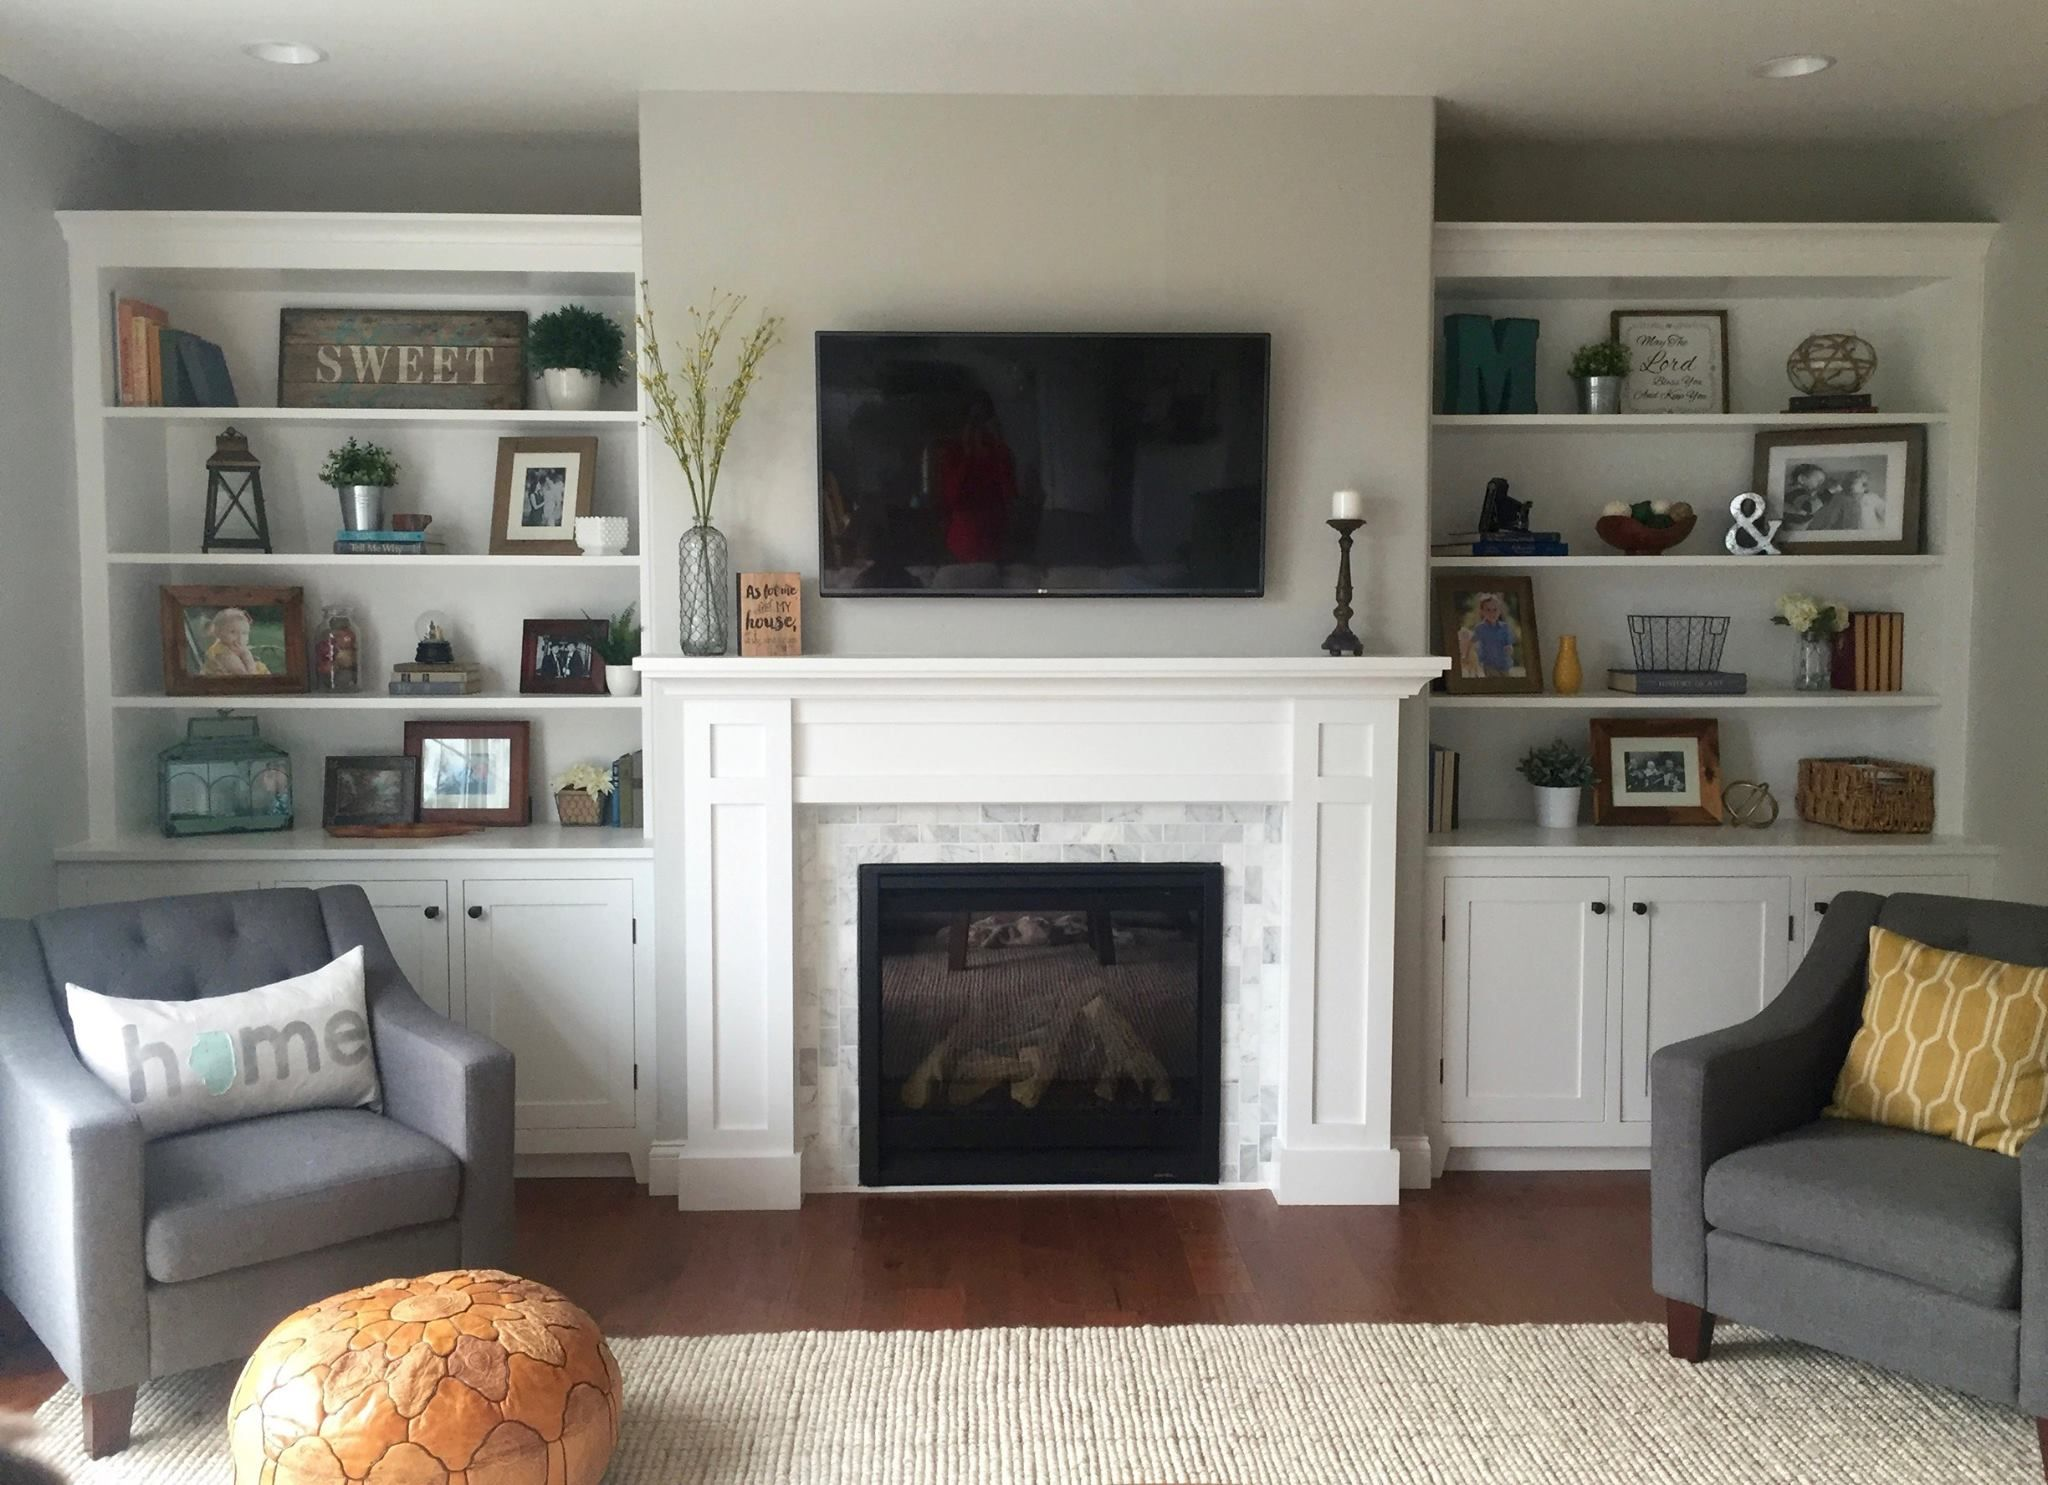 How To Build A Built-in The Cabinets - Woodworking